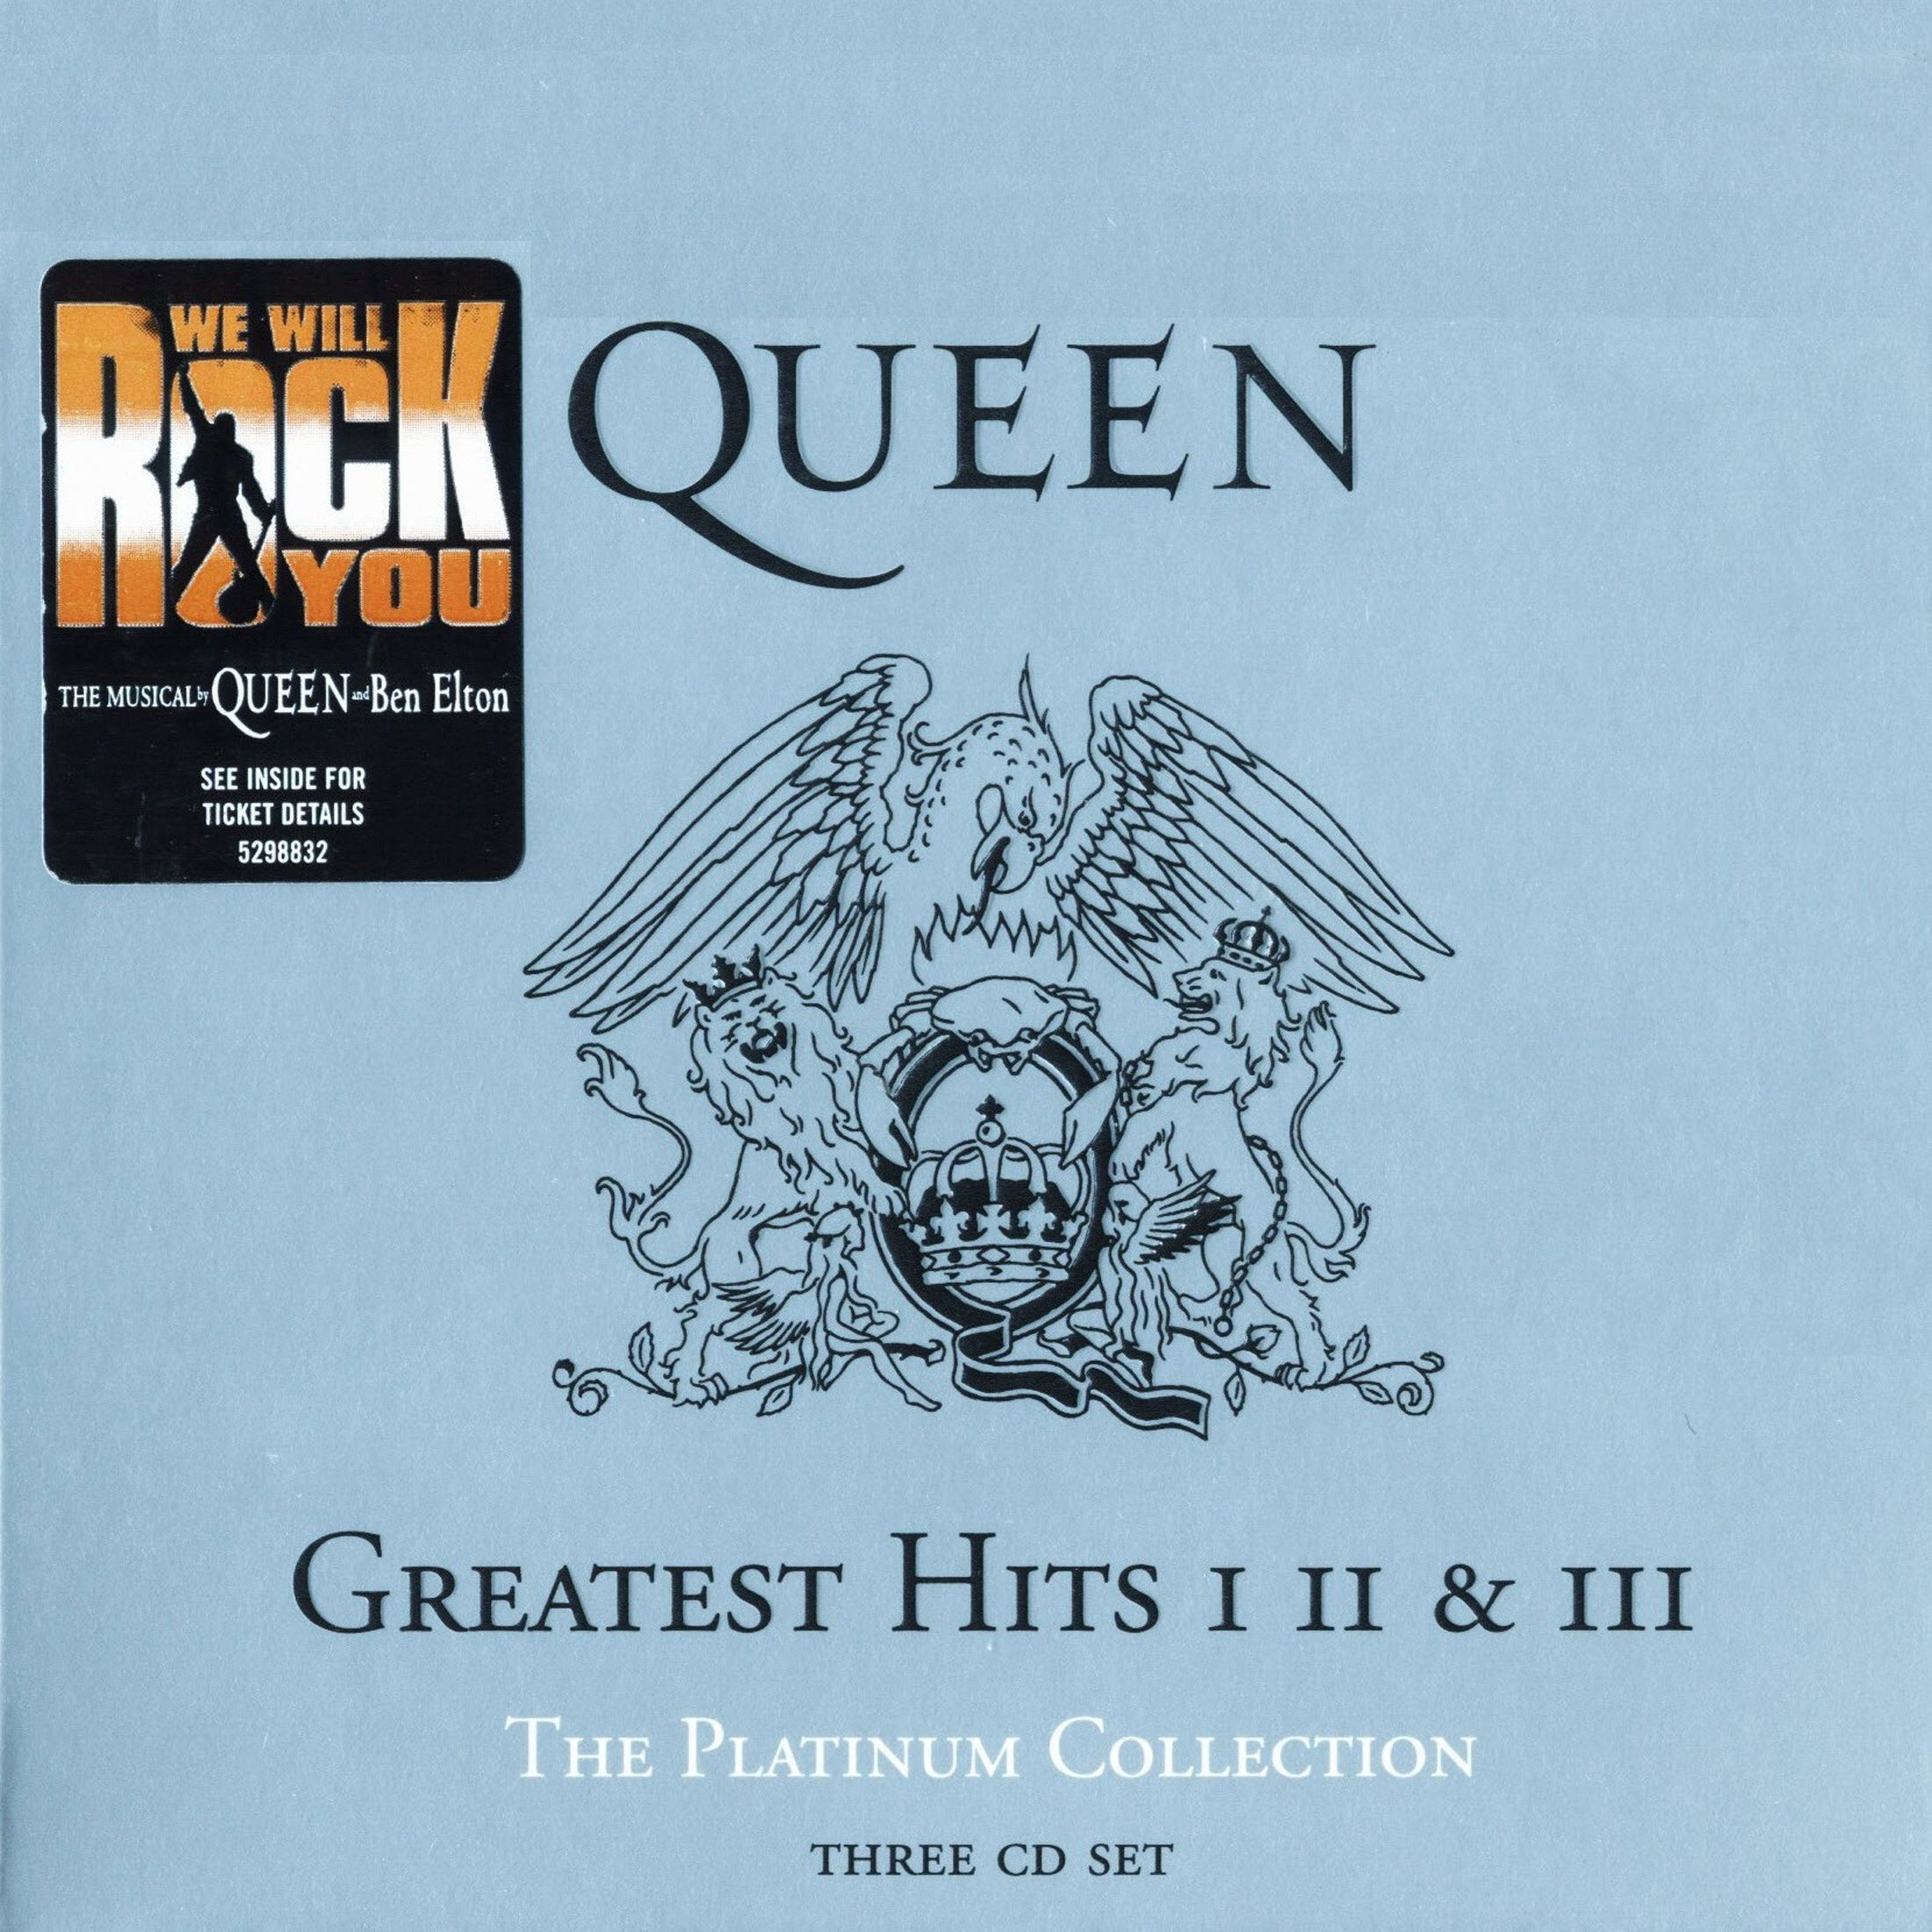 Queen - The Platinum Collection: Greatest Hits I, II & III album cover